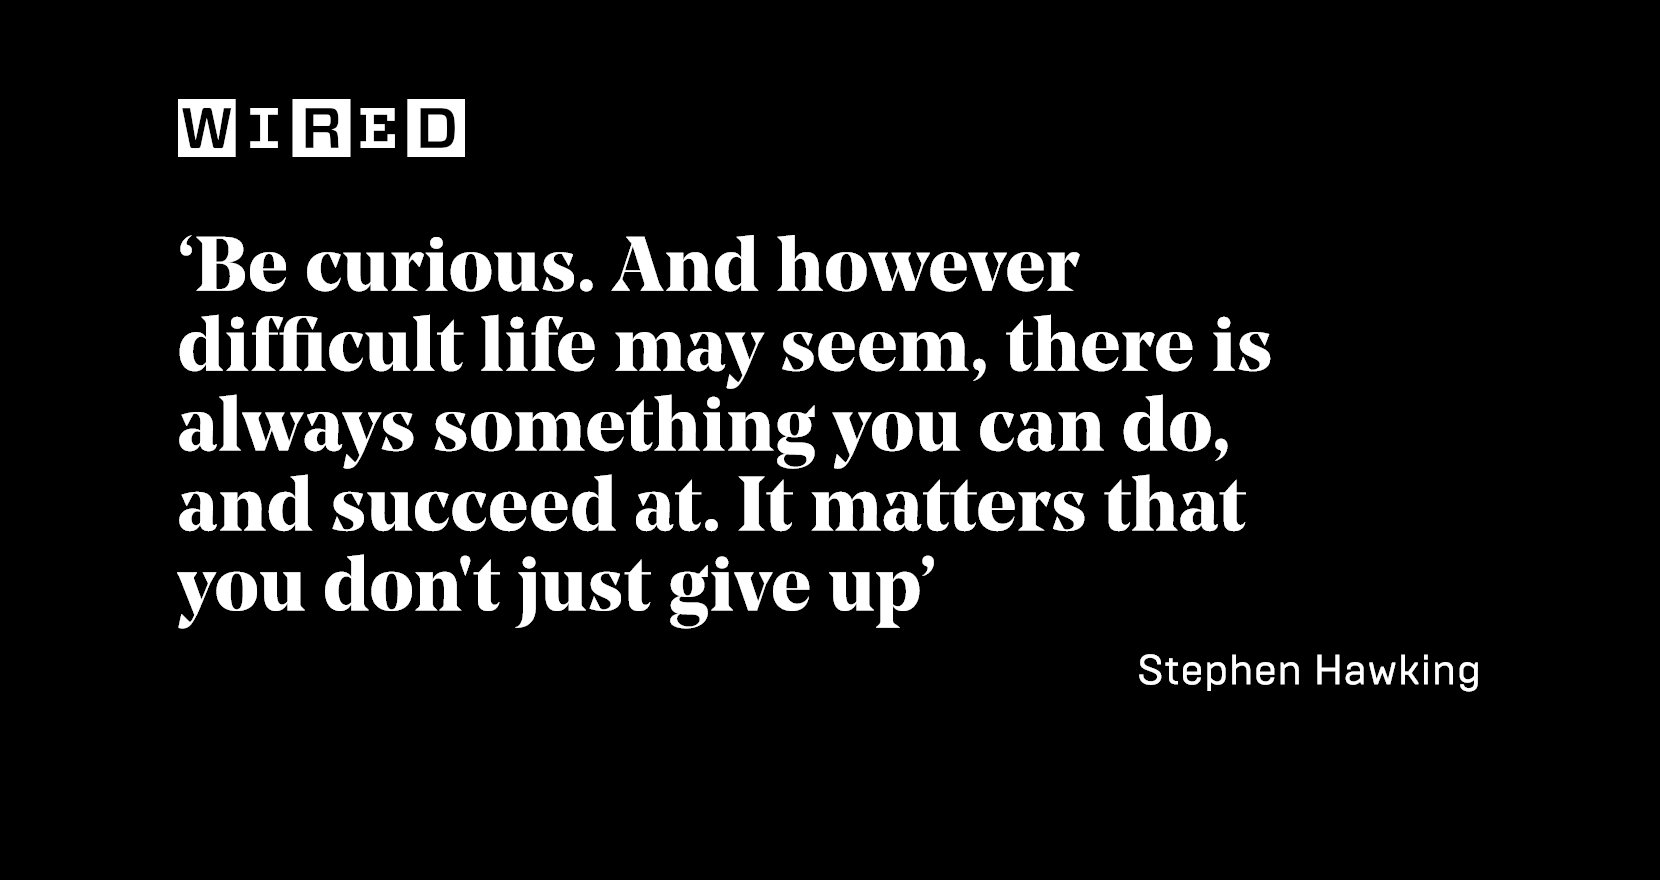 Stephen Hawking's remarkable life in his own words https://t.co/4pg29RoPze https://t.co/K9ut2u5Q6O